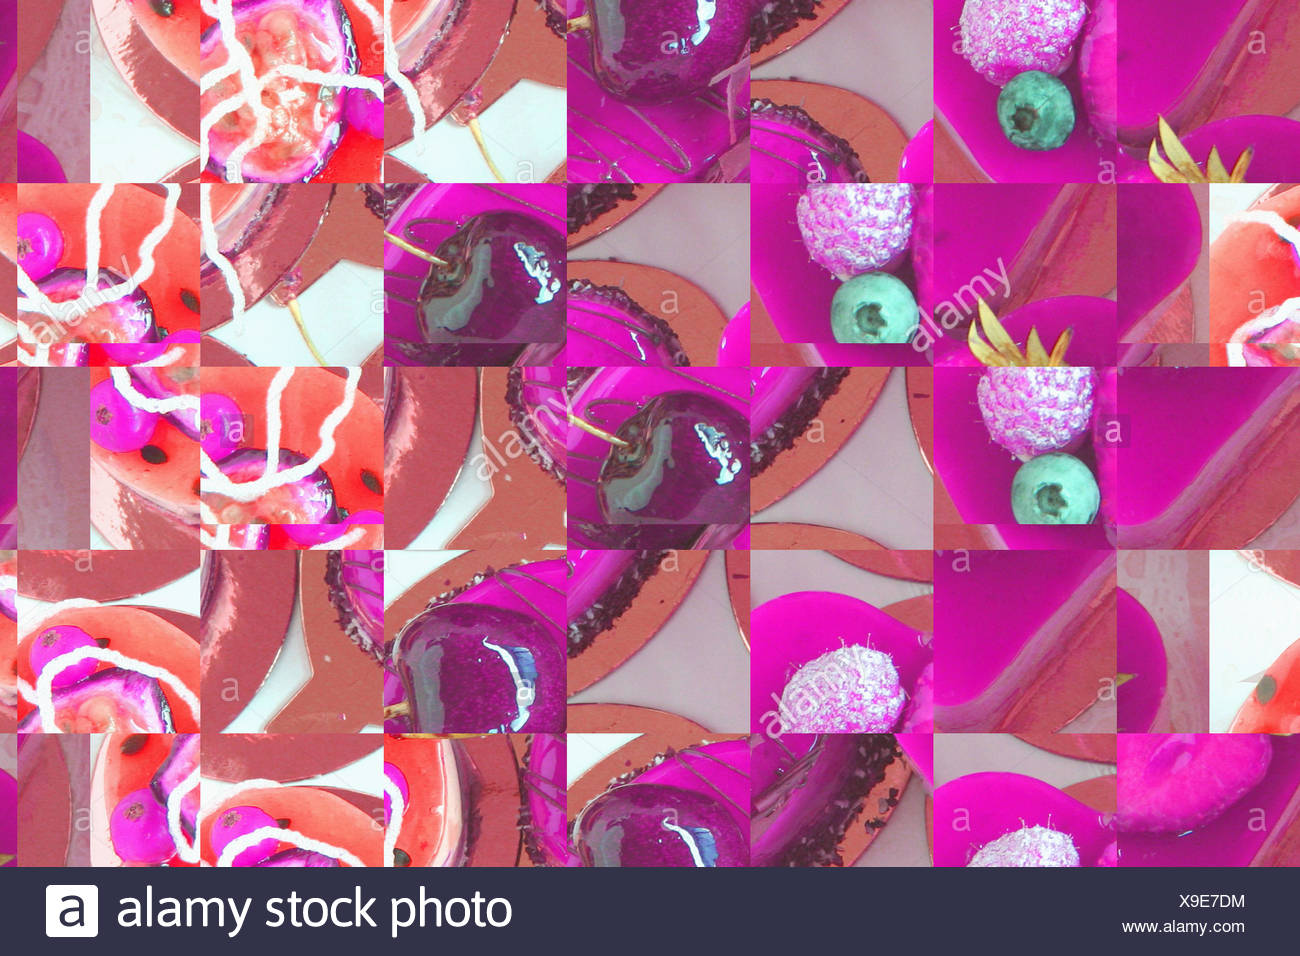 background-design, food-collage - Stock Image